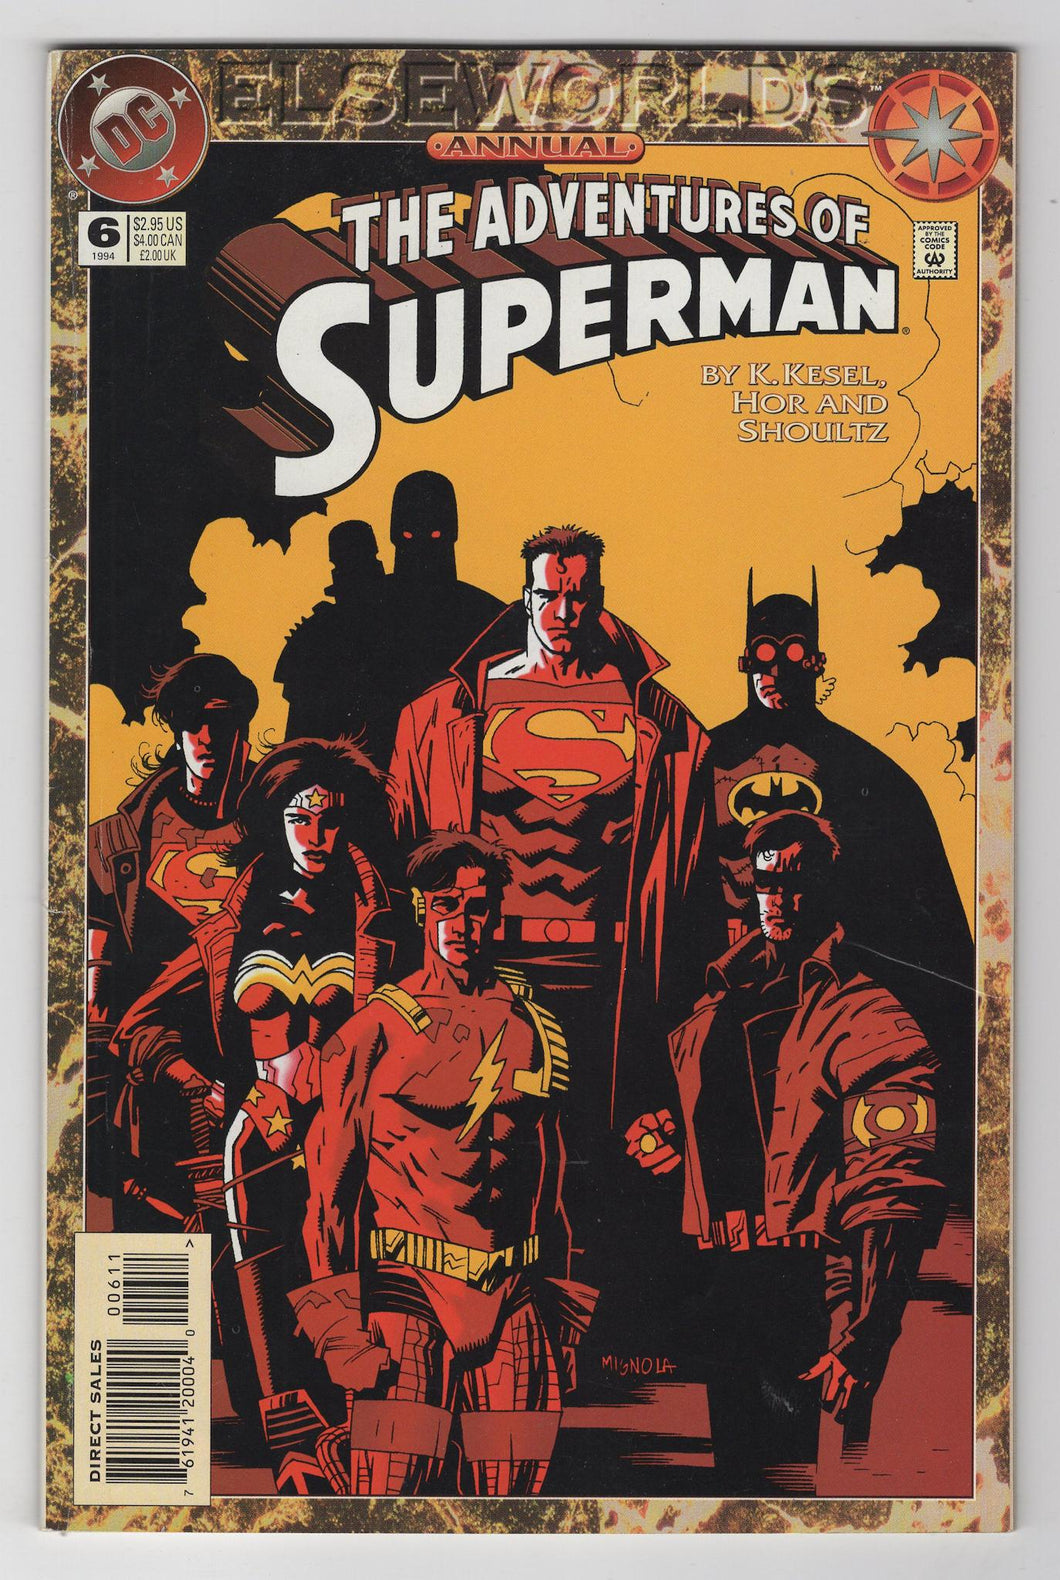 Adventures of Superman Annual #6 Cover Front